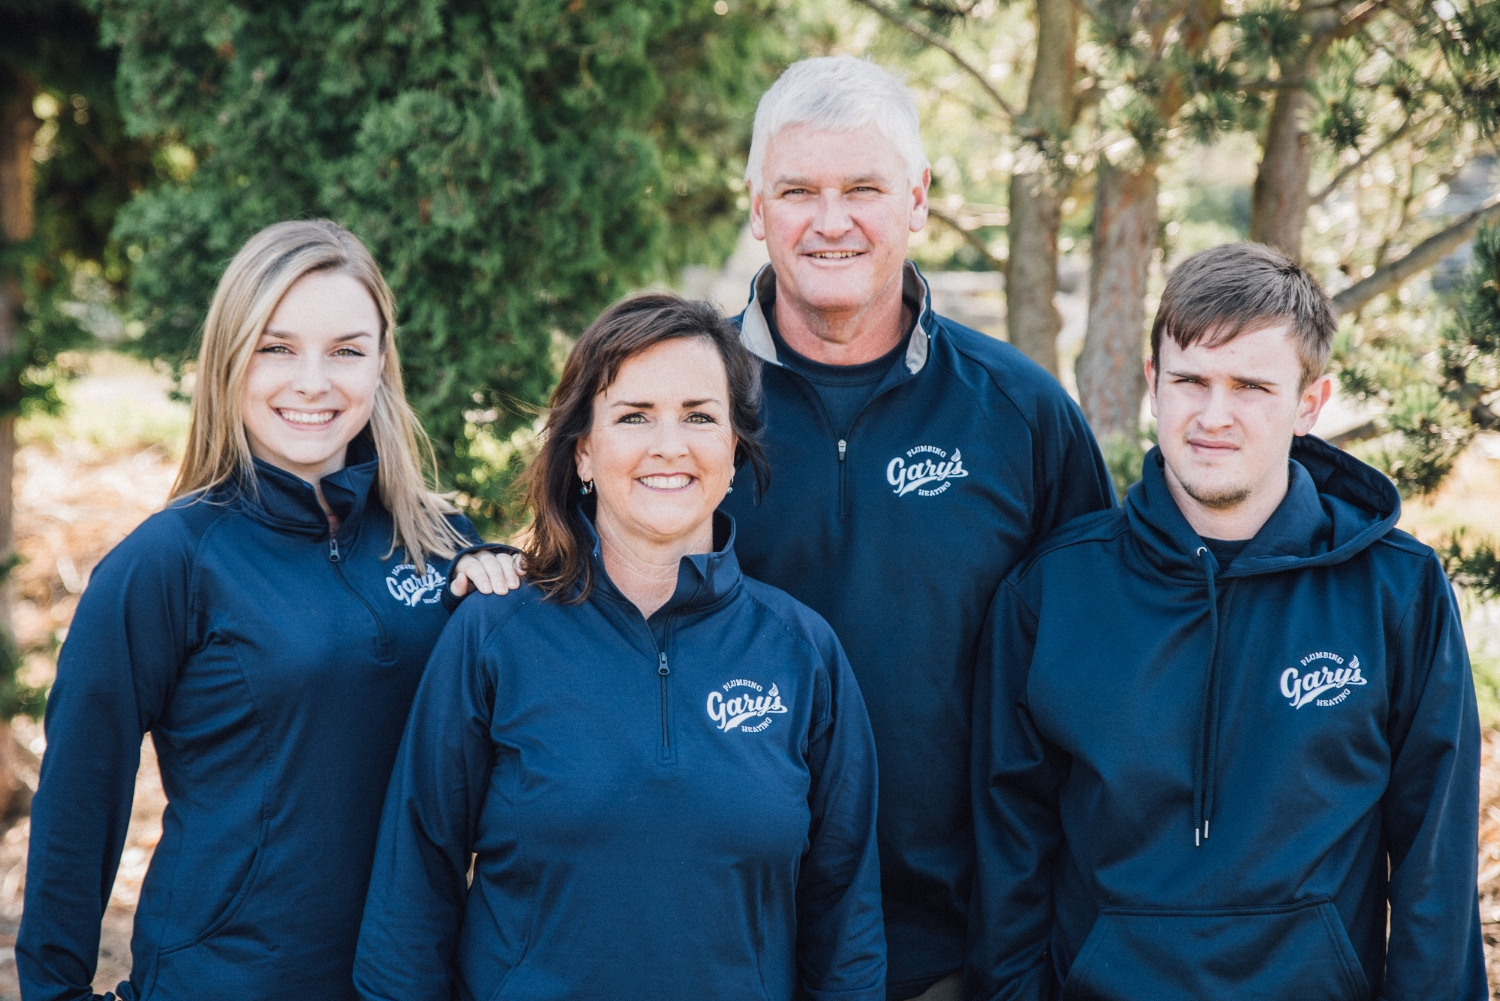 The whole Gibb family works at Gary's - Mary and Sarah in the office, Will in the shop, and Gary training the team and giving customer care.